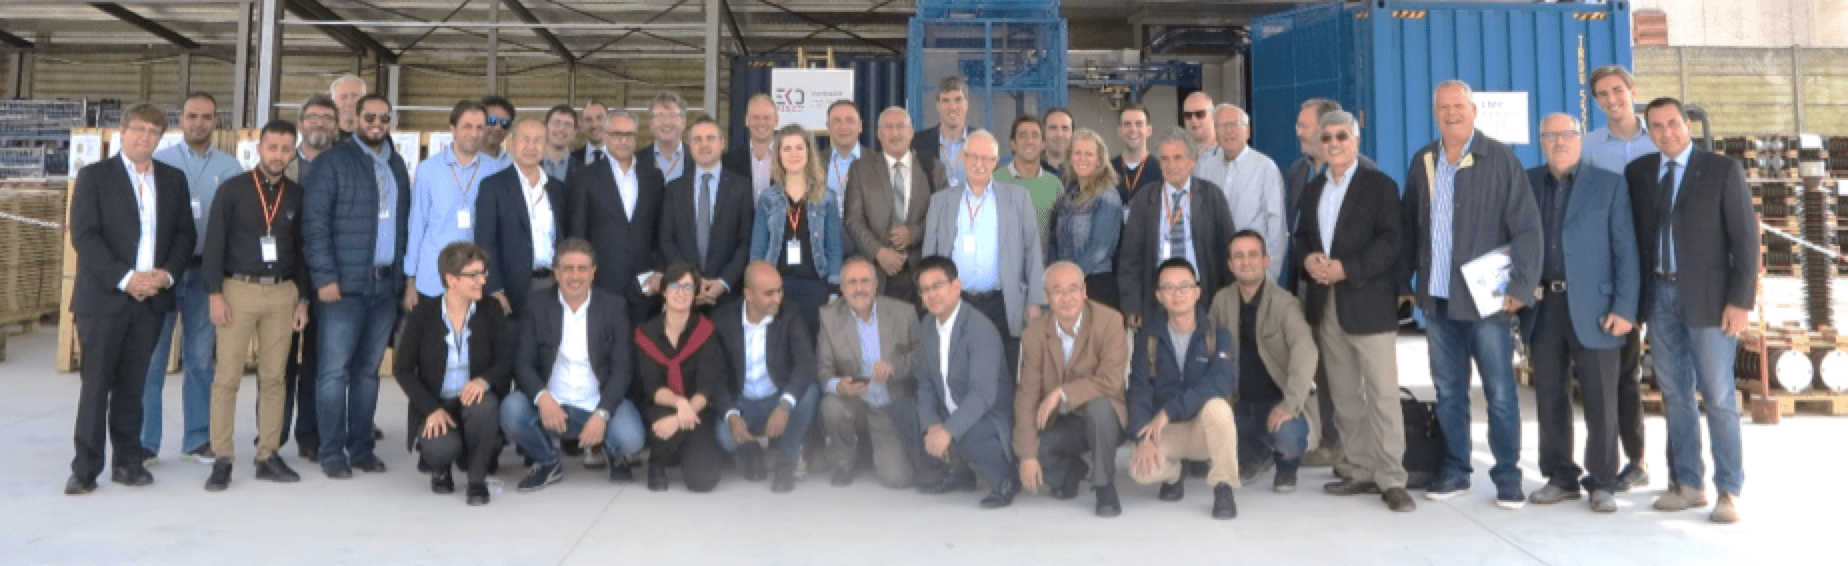 high voltage insulator coating High Voltage Insulator Coatings: State-of-the-Art & Future Development Participants in Avellino Symposium October 2018